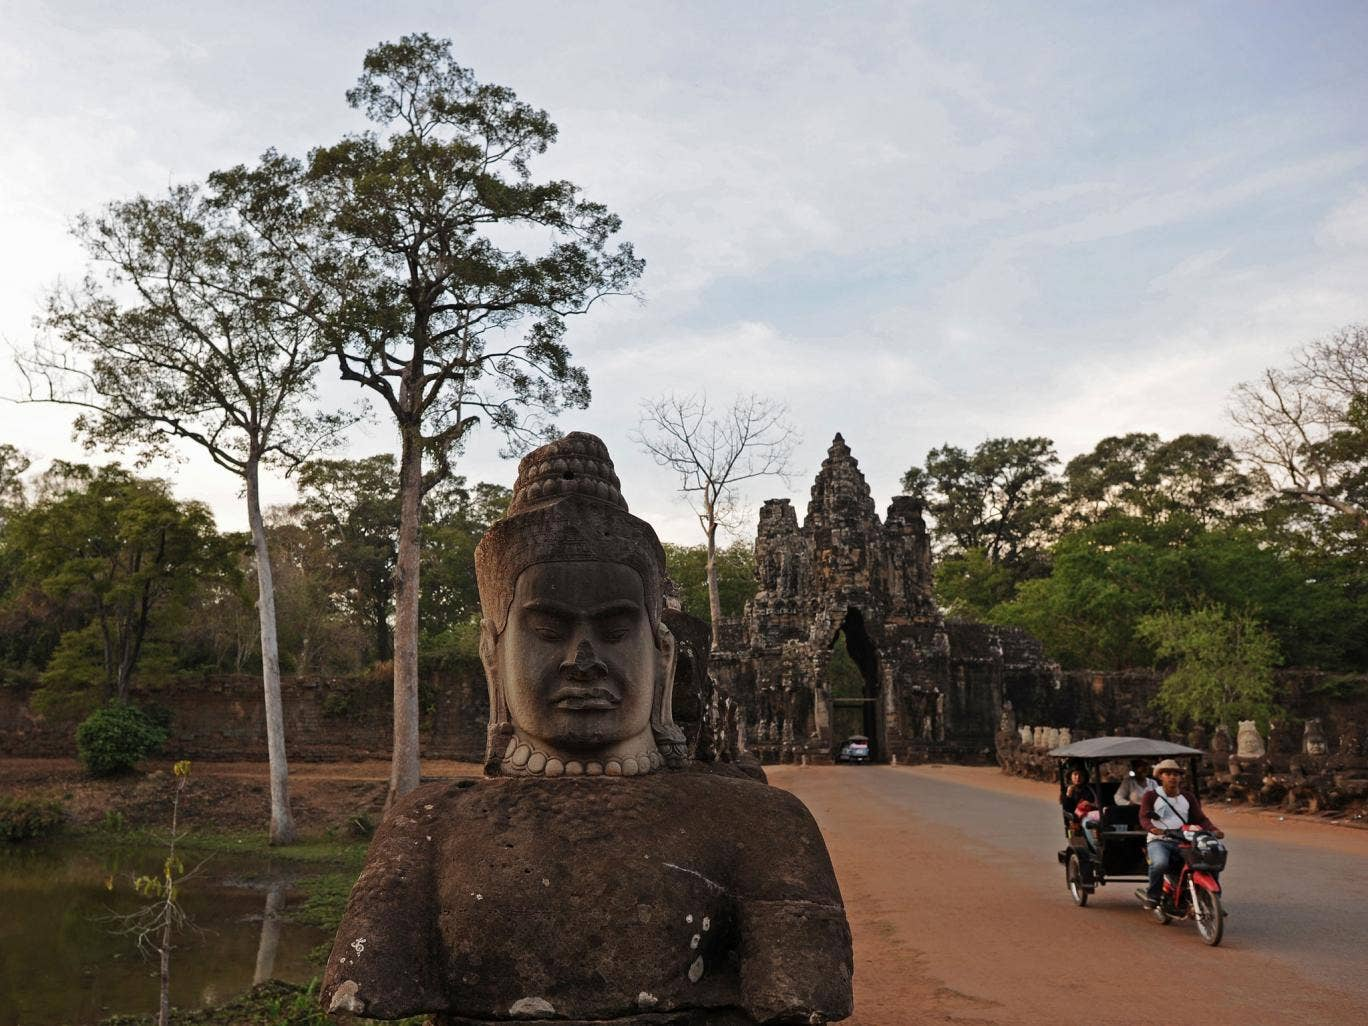 Siem Reap province is best known as the site of Angkor and the Angkor Wat temple ruins